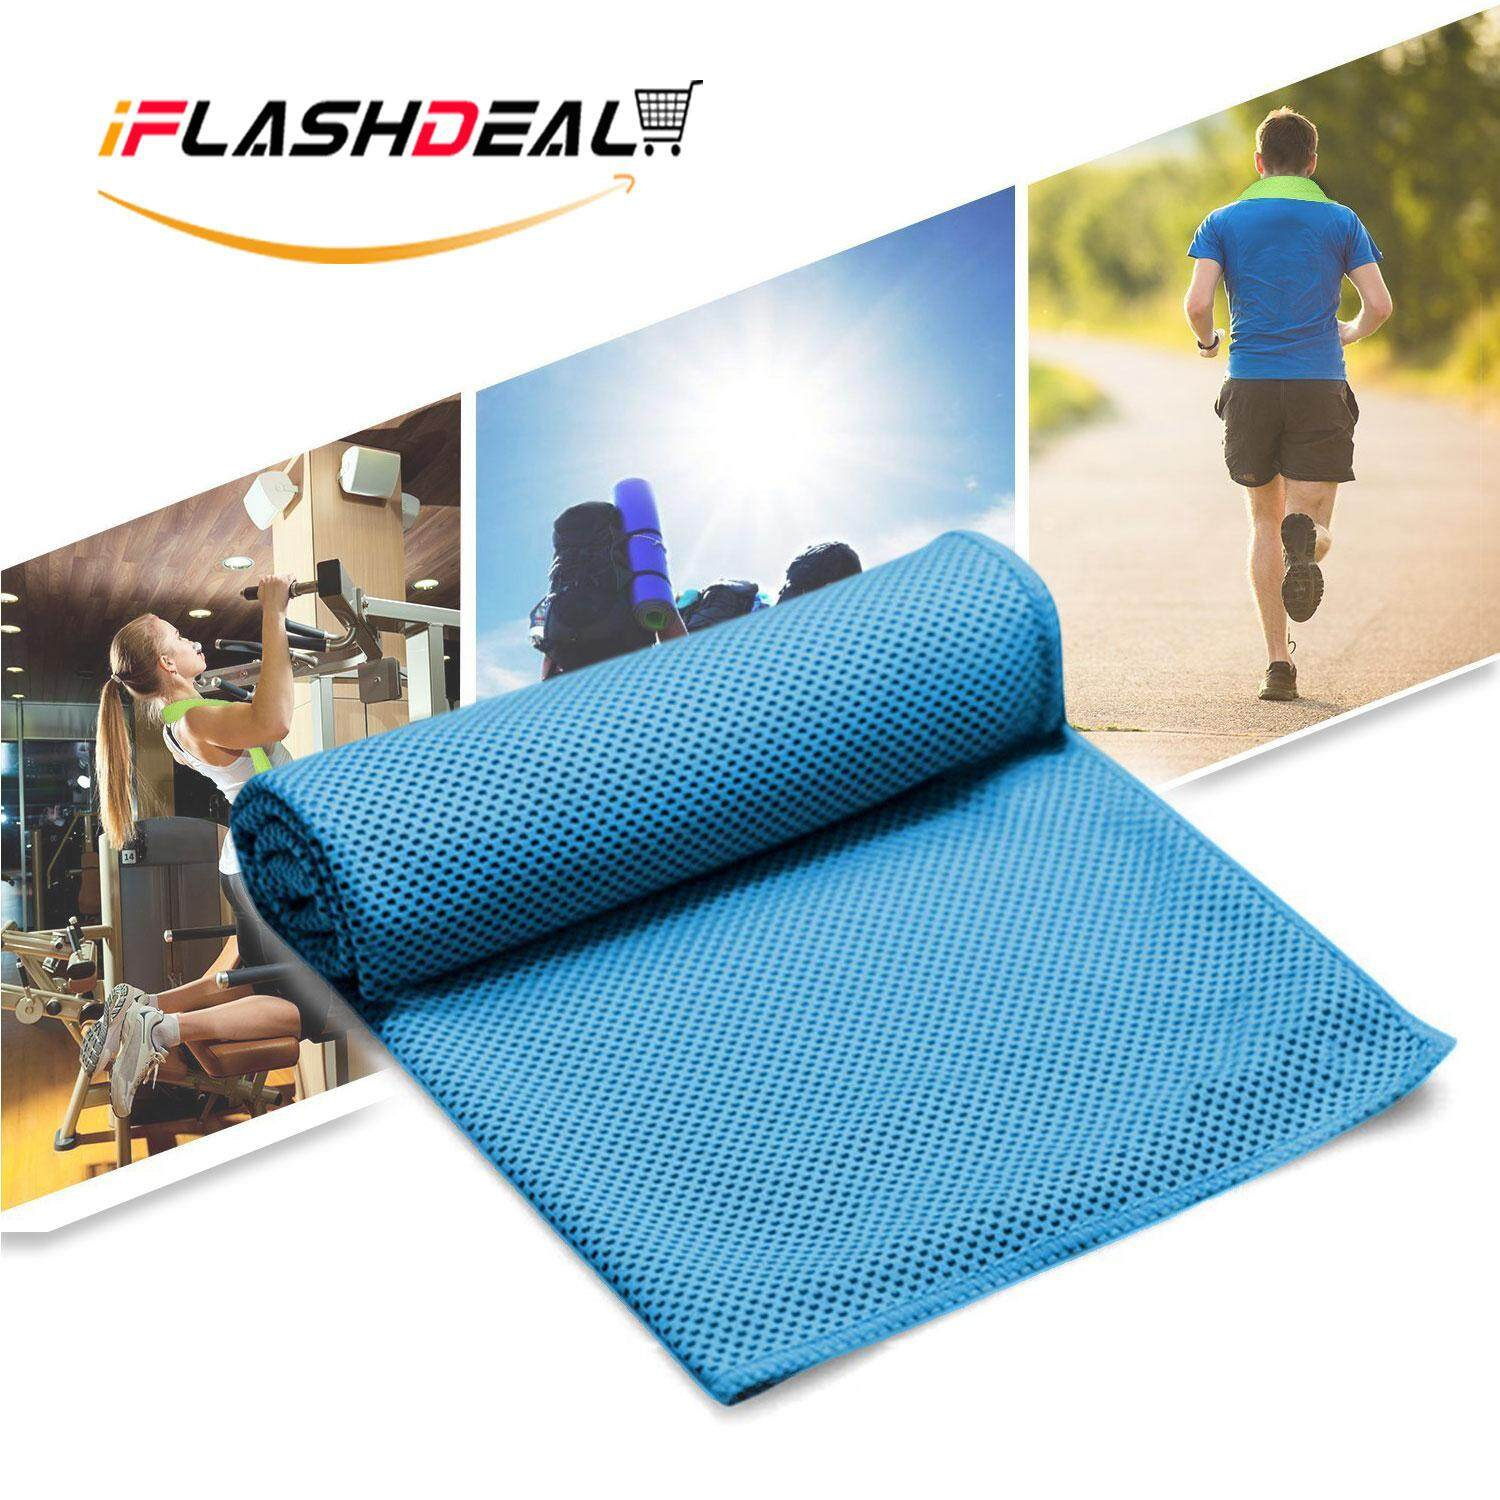 Iflashdeal Sports Towels Instant Cooling Ice Cold Towel Sports Gym Quick Dry Towels Microfiber Towel For Cycling Running Climbing Fishing By Iflashdeal.